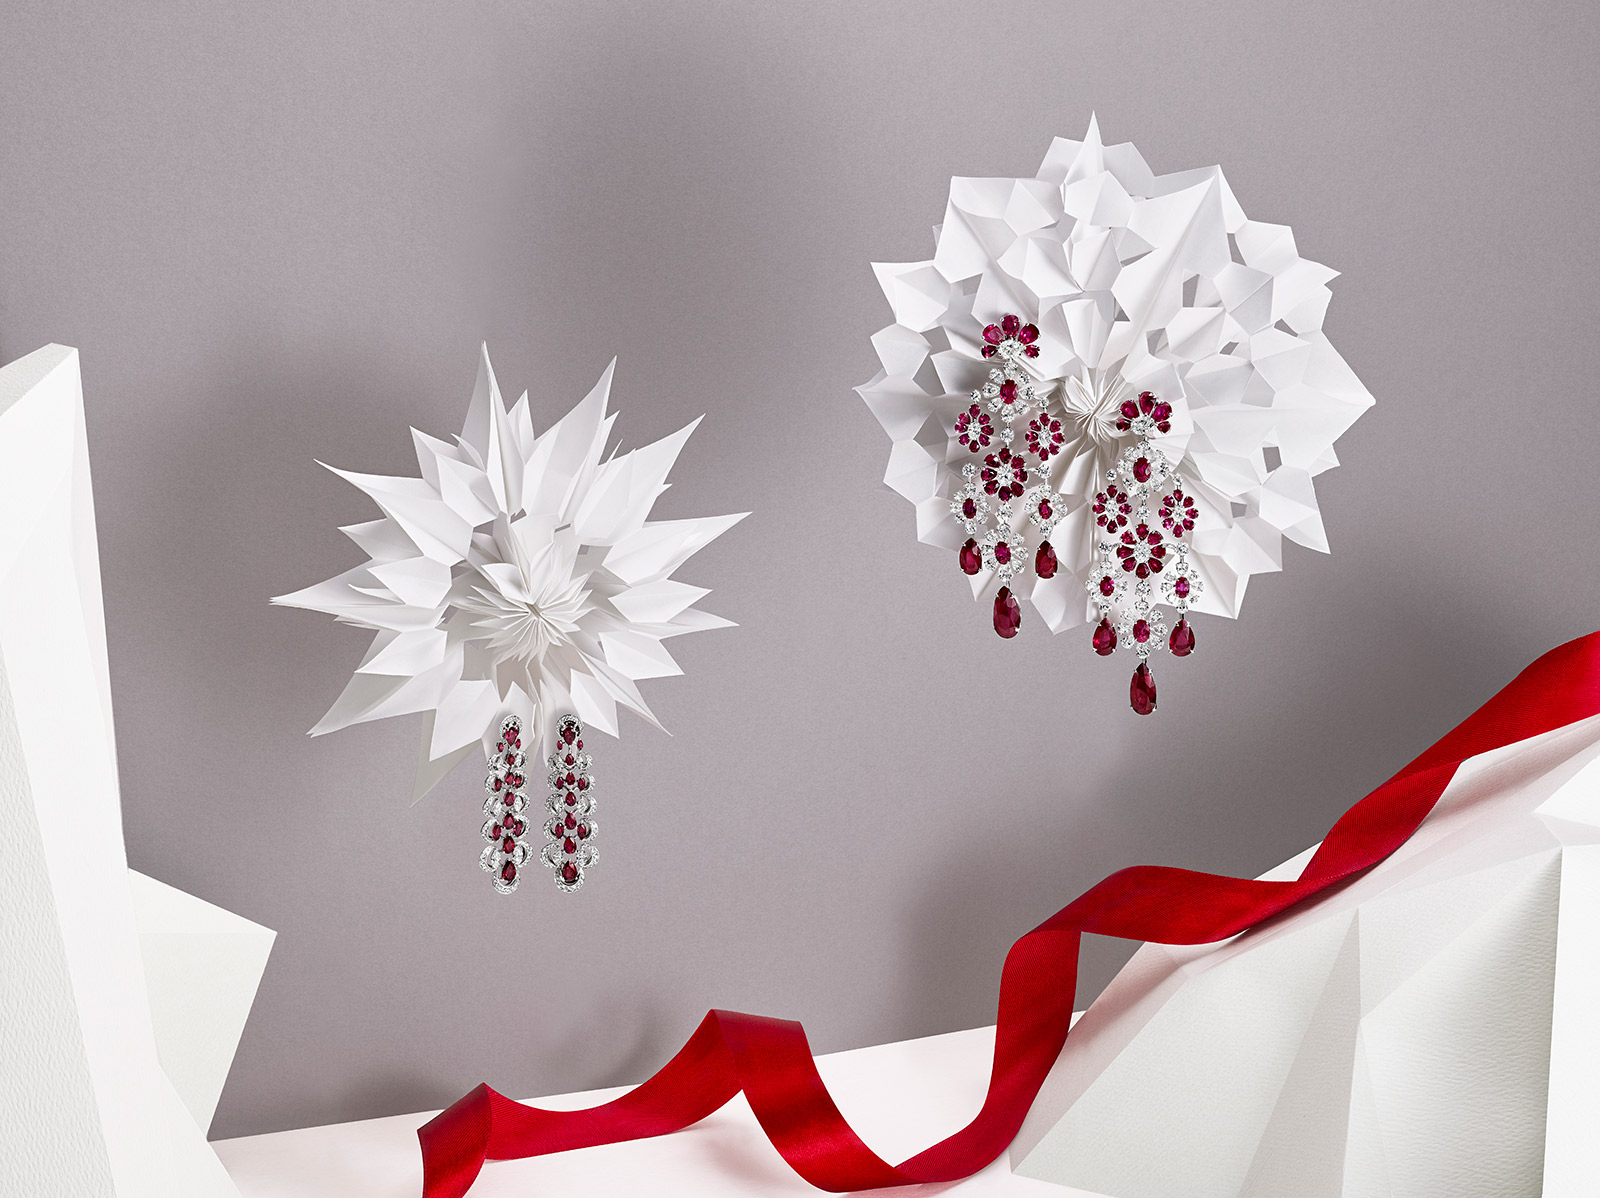 Left to right: Chopard Haute Joaillerie collection earrings with 6.75ct rubies and diamonds in white gold, and David Morris earrings with diamonds and rubies in white gold